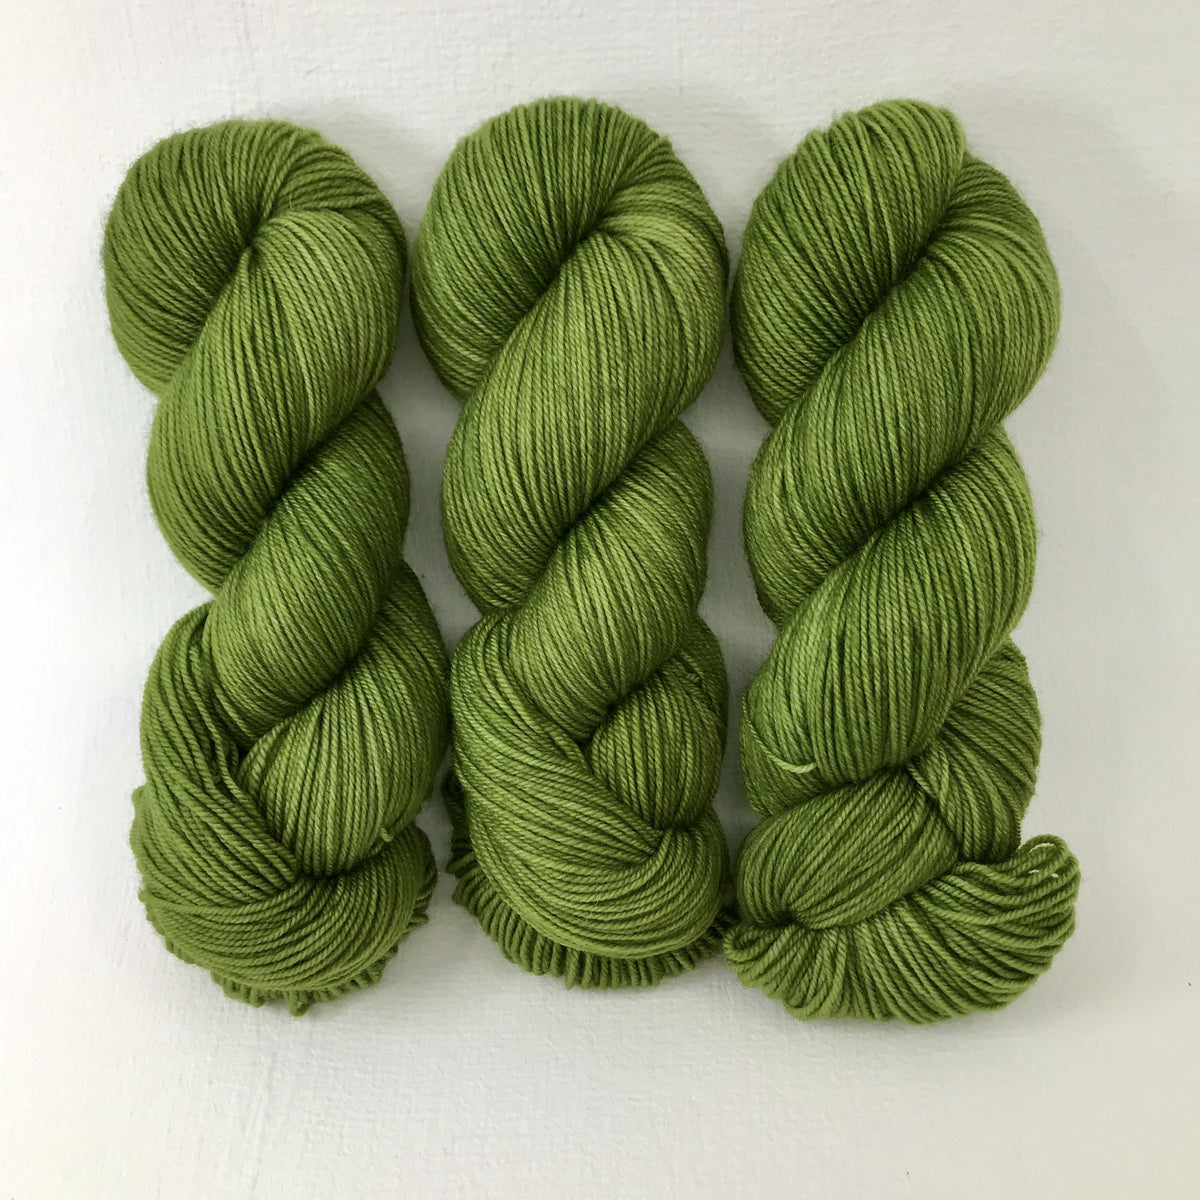 Mossy Bank - Merino DK / Light Worsted - Dyed Stock